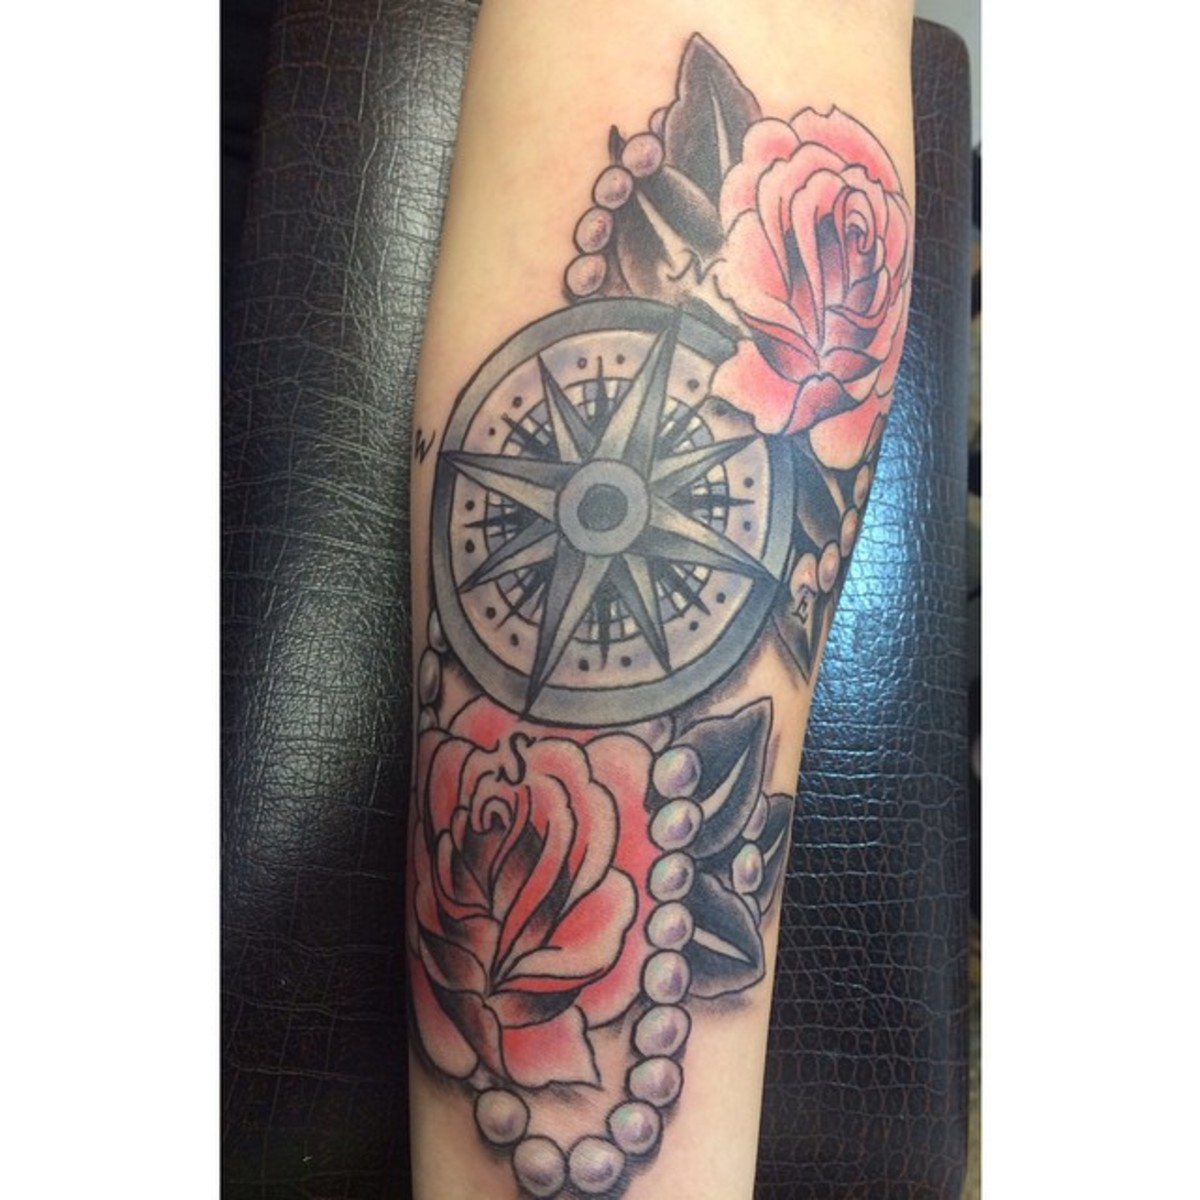 A classic idea for a tattoo with roses and a compass - this one is large enough for beautiful detail.